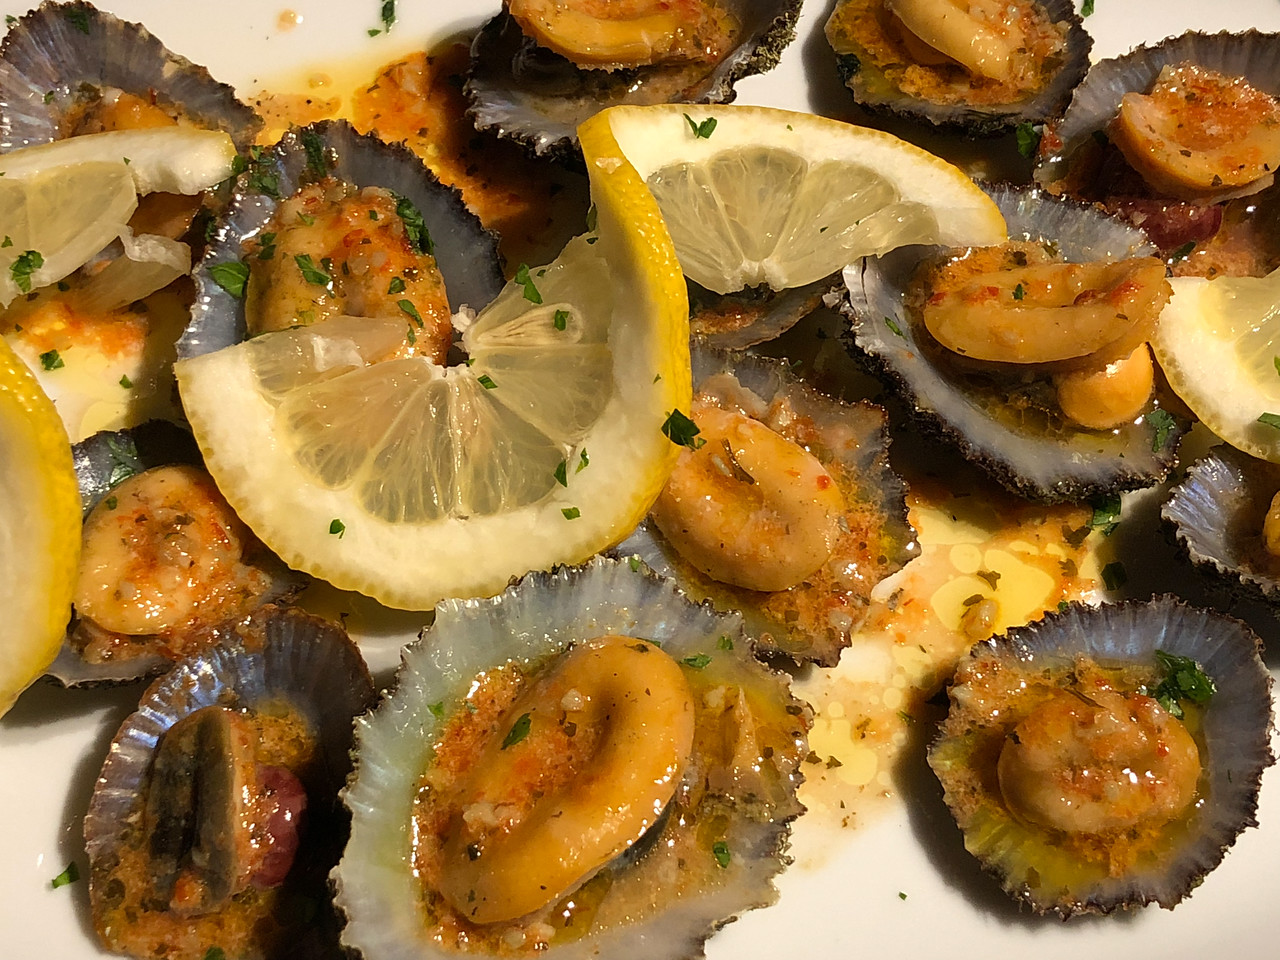 Limpets at O' Pirata on Terceira Azores